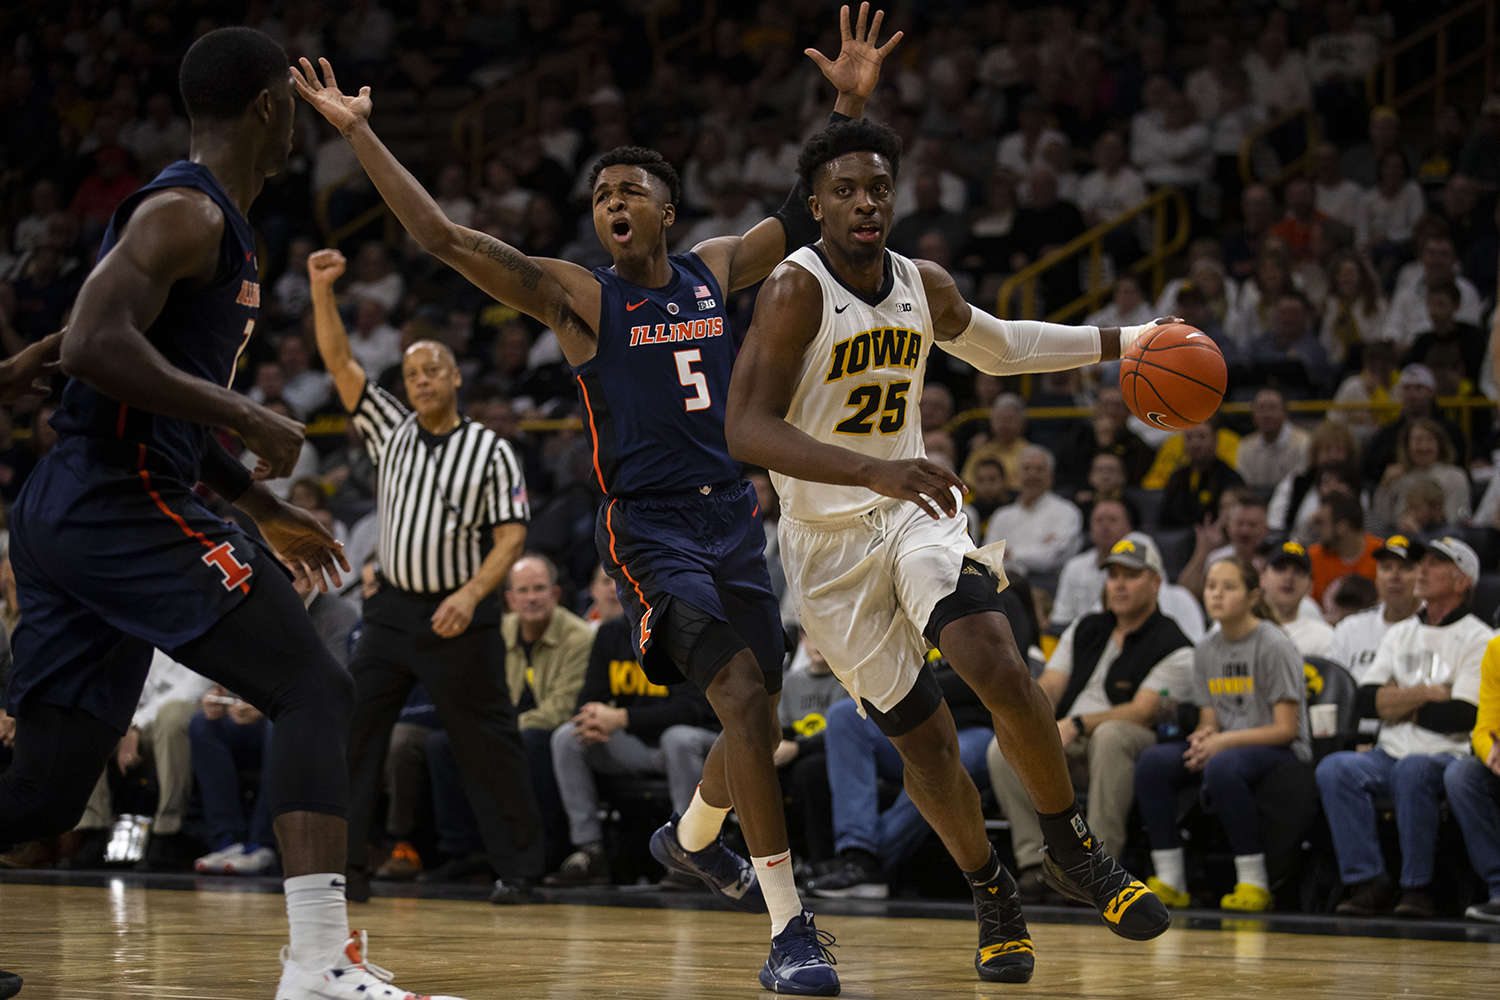 Iowa forward Tyler Cook drives to the hoop during the Iowa/Illinois men's basketball game at Carver-Hawkeye Arena on Sunday, January 20, 2019. The Hawkeyes defeated the Fighting Illini, 95-71.